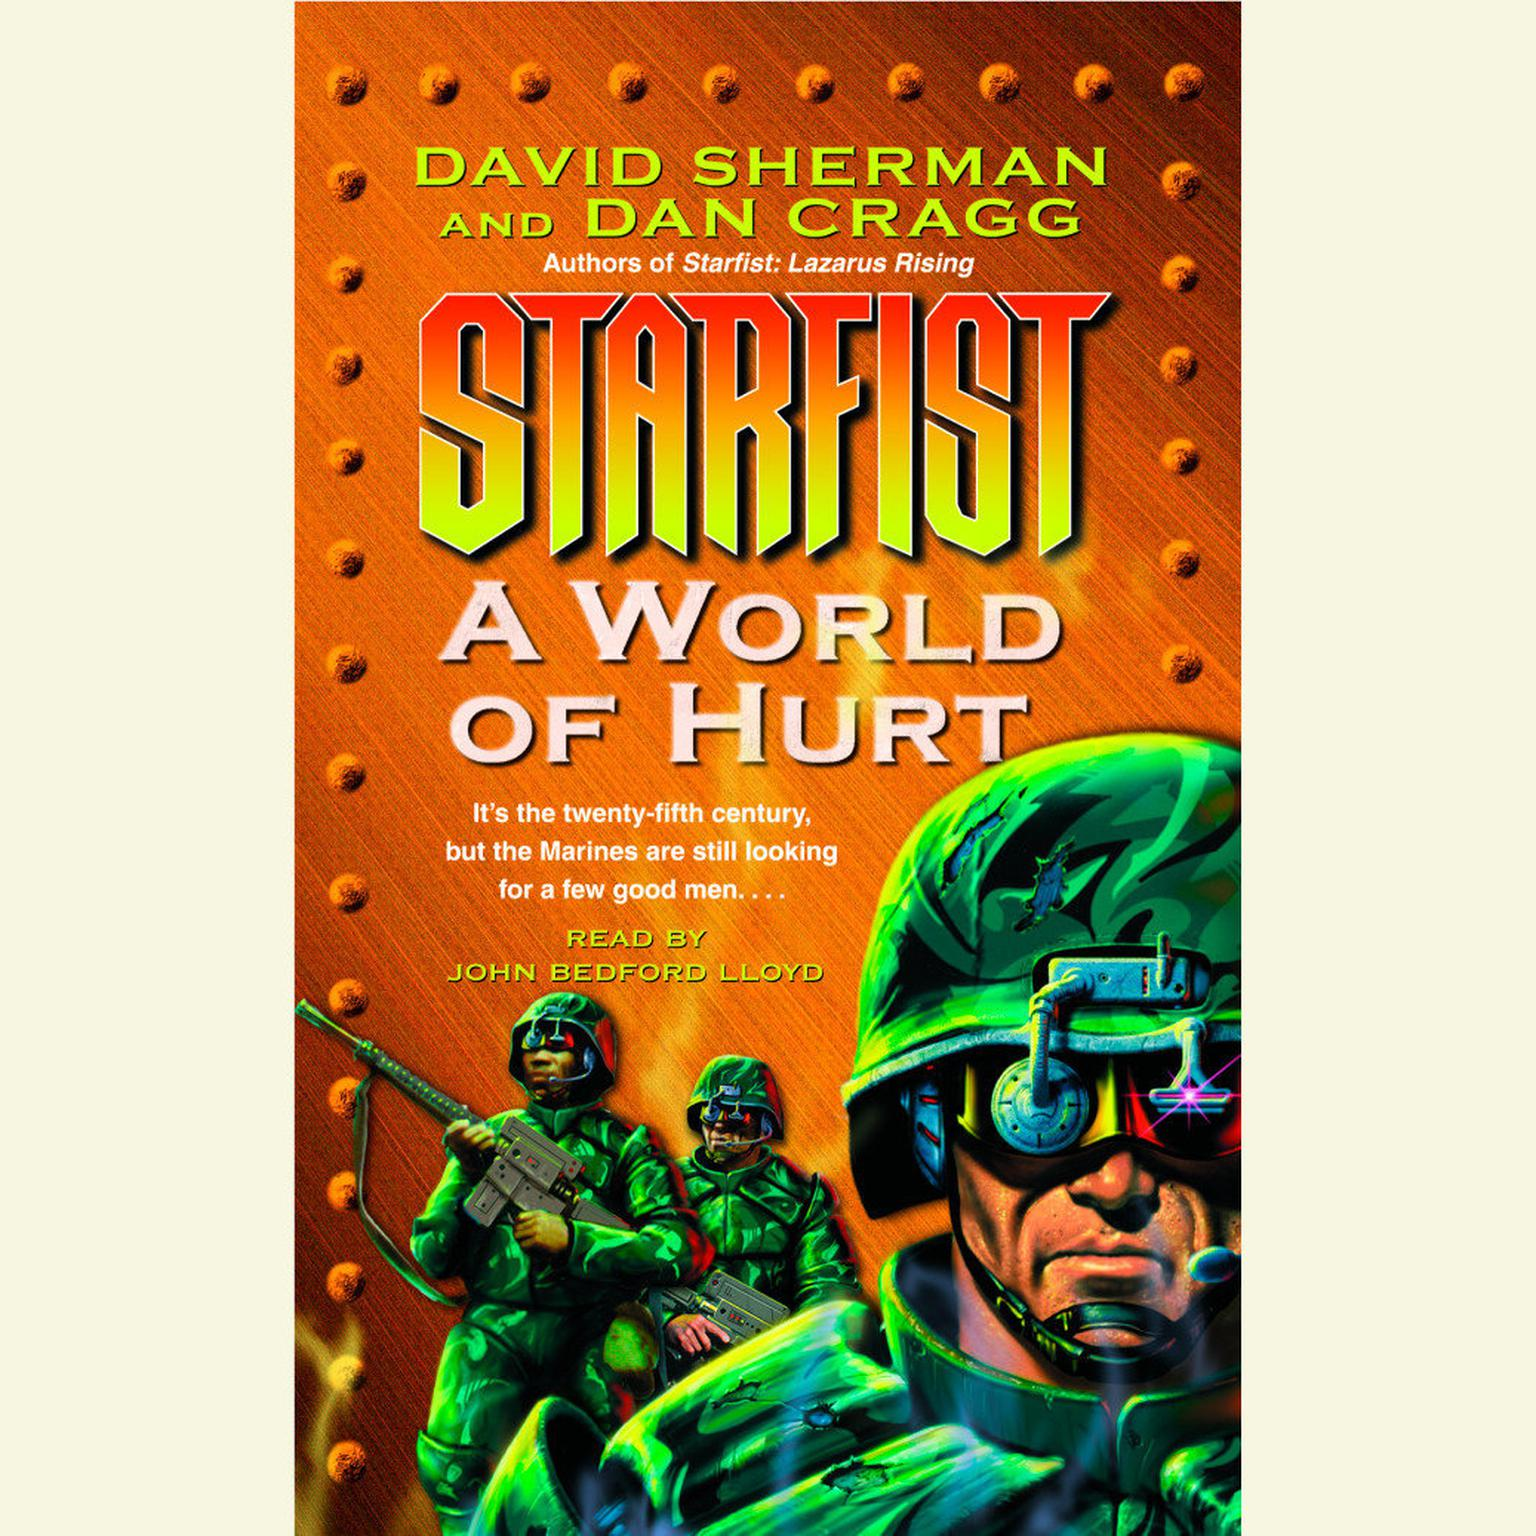 Printable StarFist: A World of Hurt Audiobook Cover Art